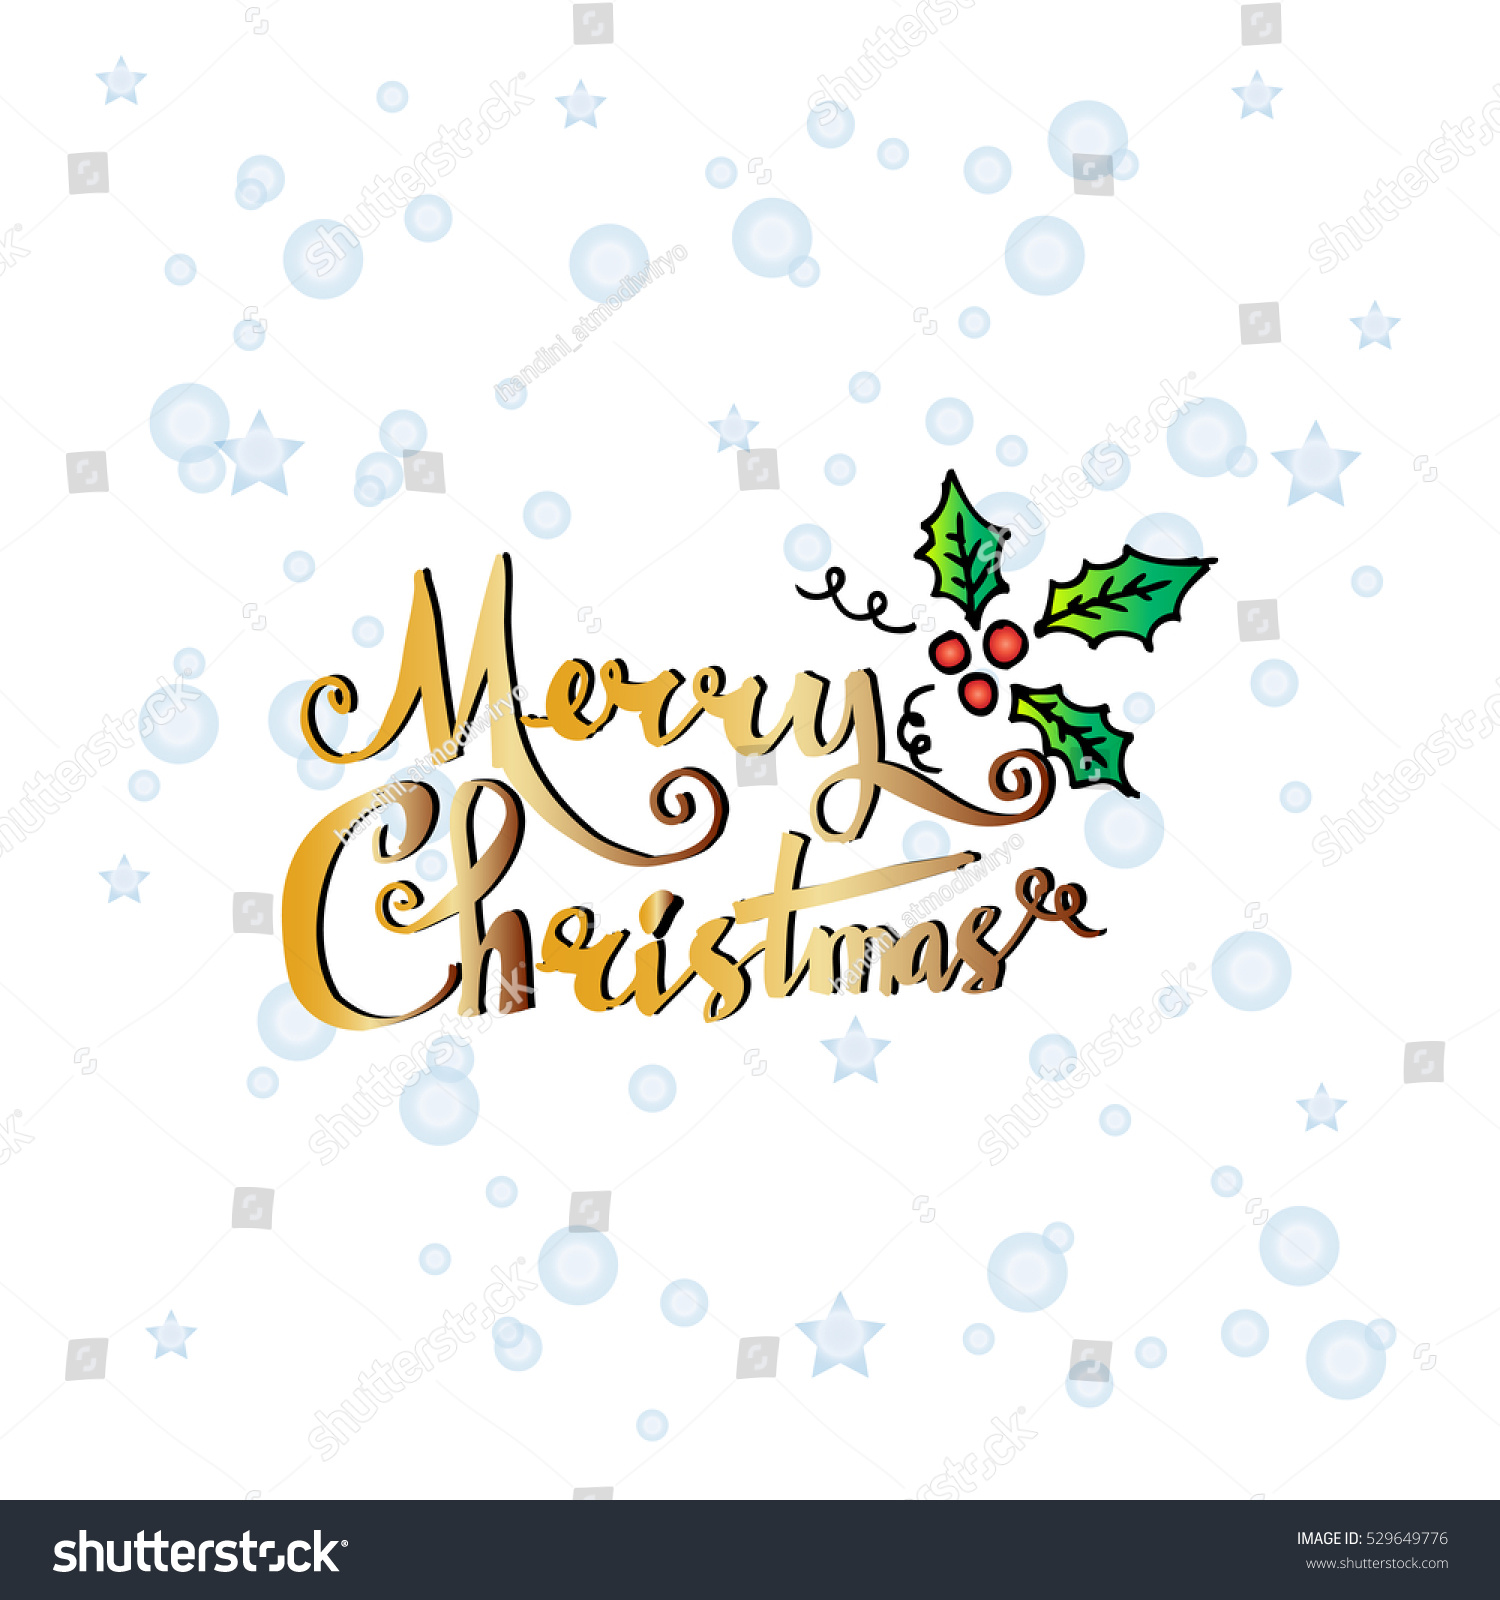 Merry Christmas Text Calligraphic Lettering Design Stock Vector ...